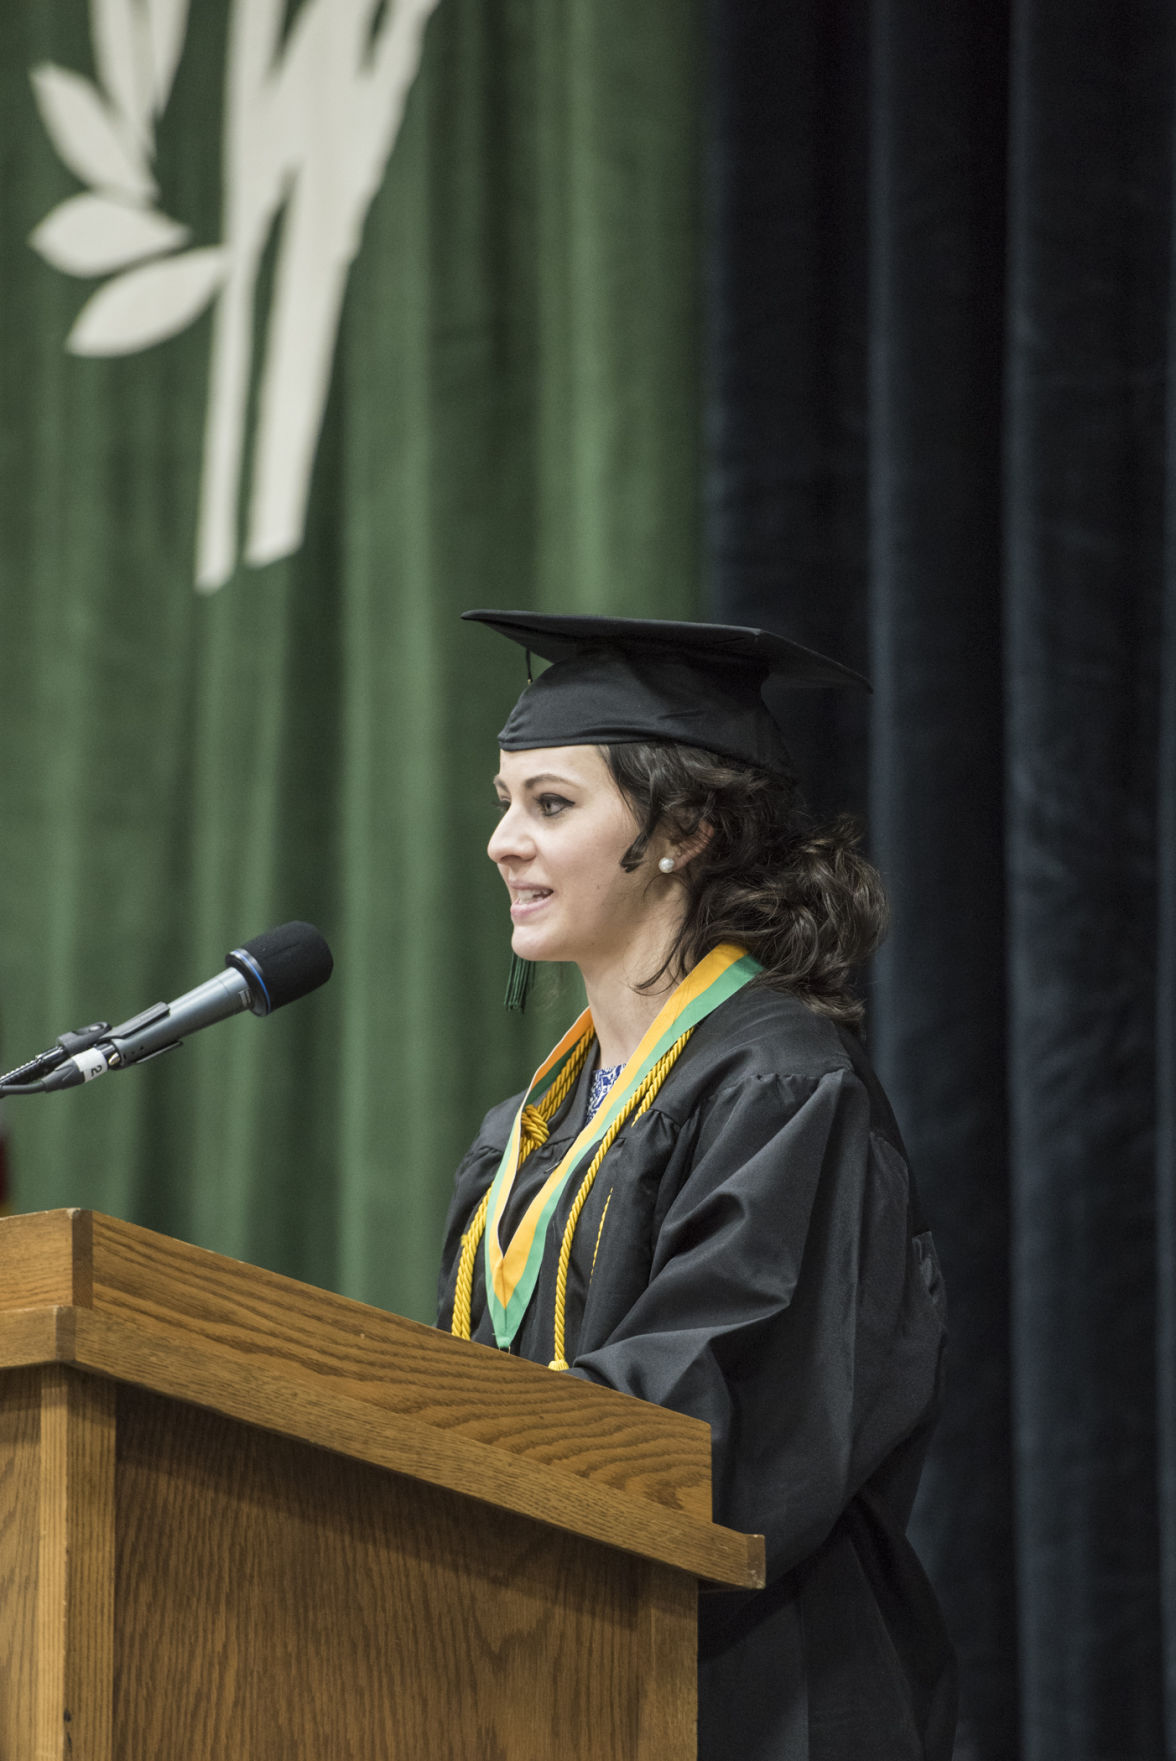 Kristin Crowe at UW-Parkside Graduation